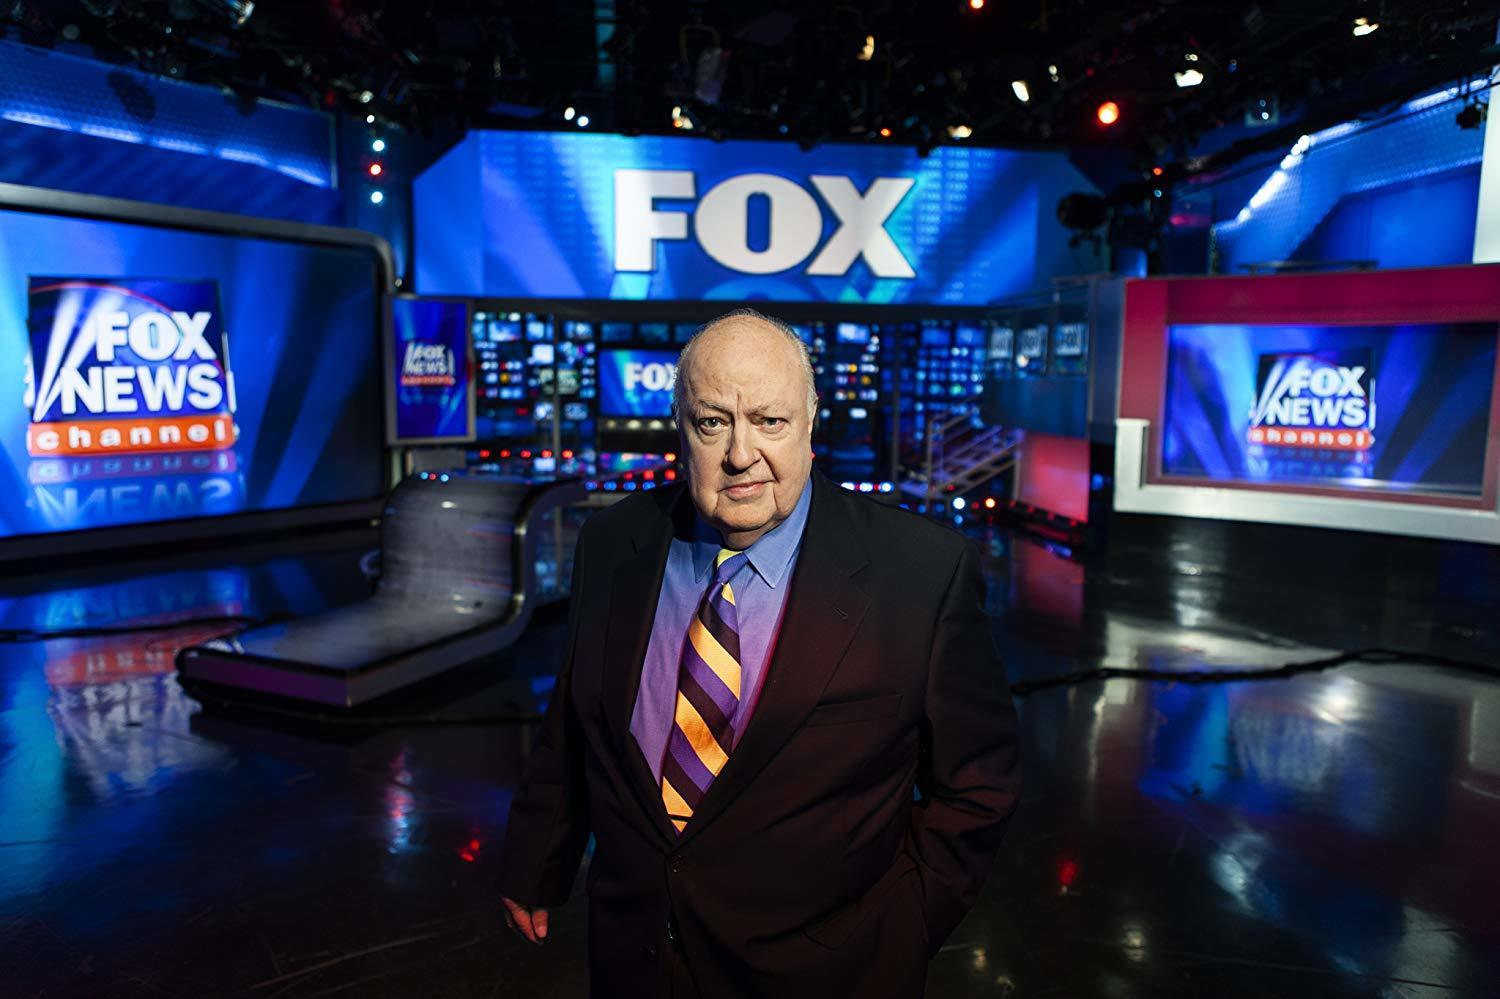 'Divide and Conquer' review: Roger Ailes documentary a look into an 'incredible ego'